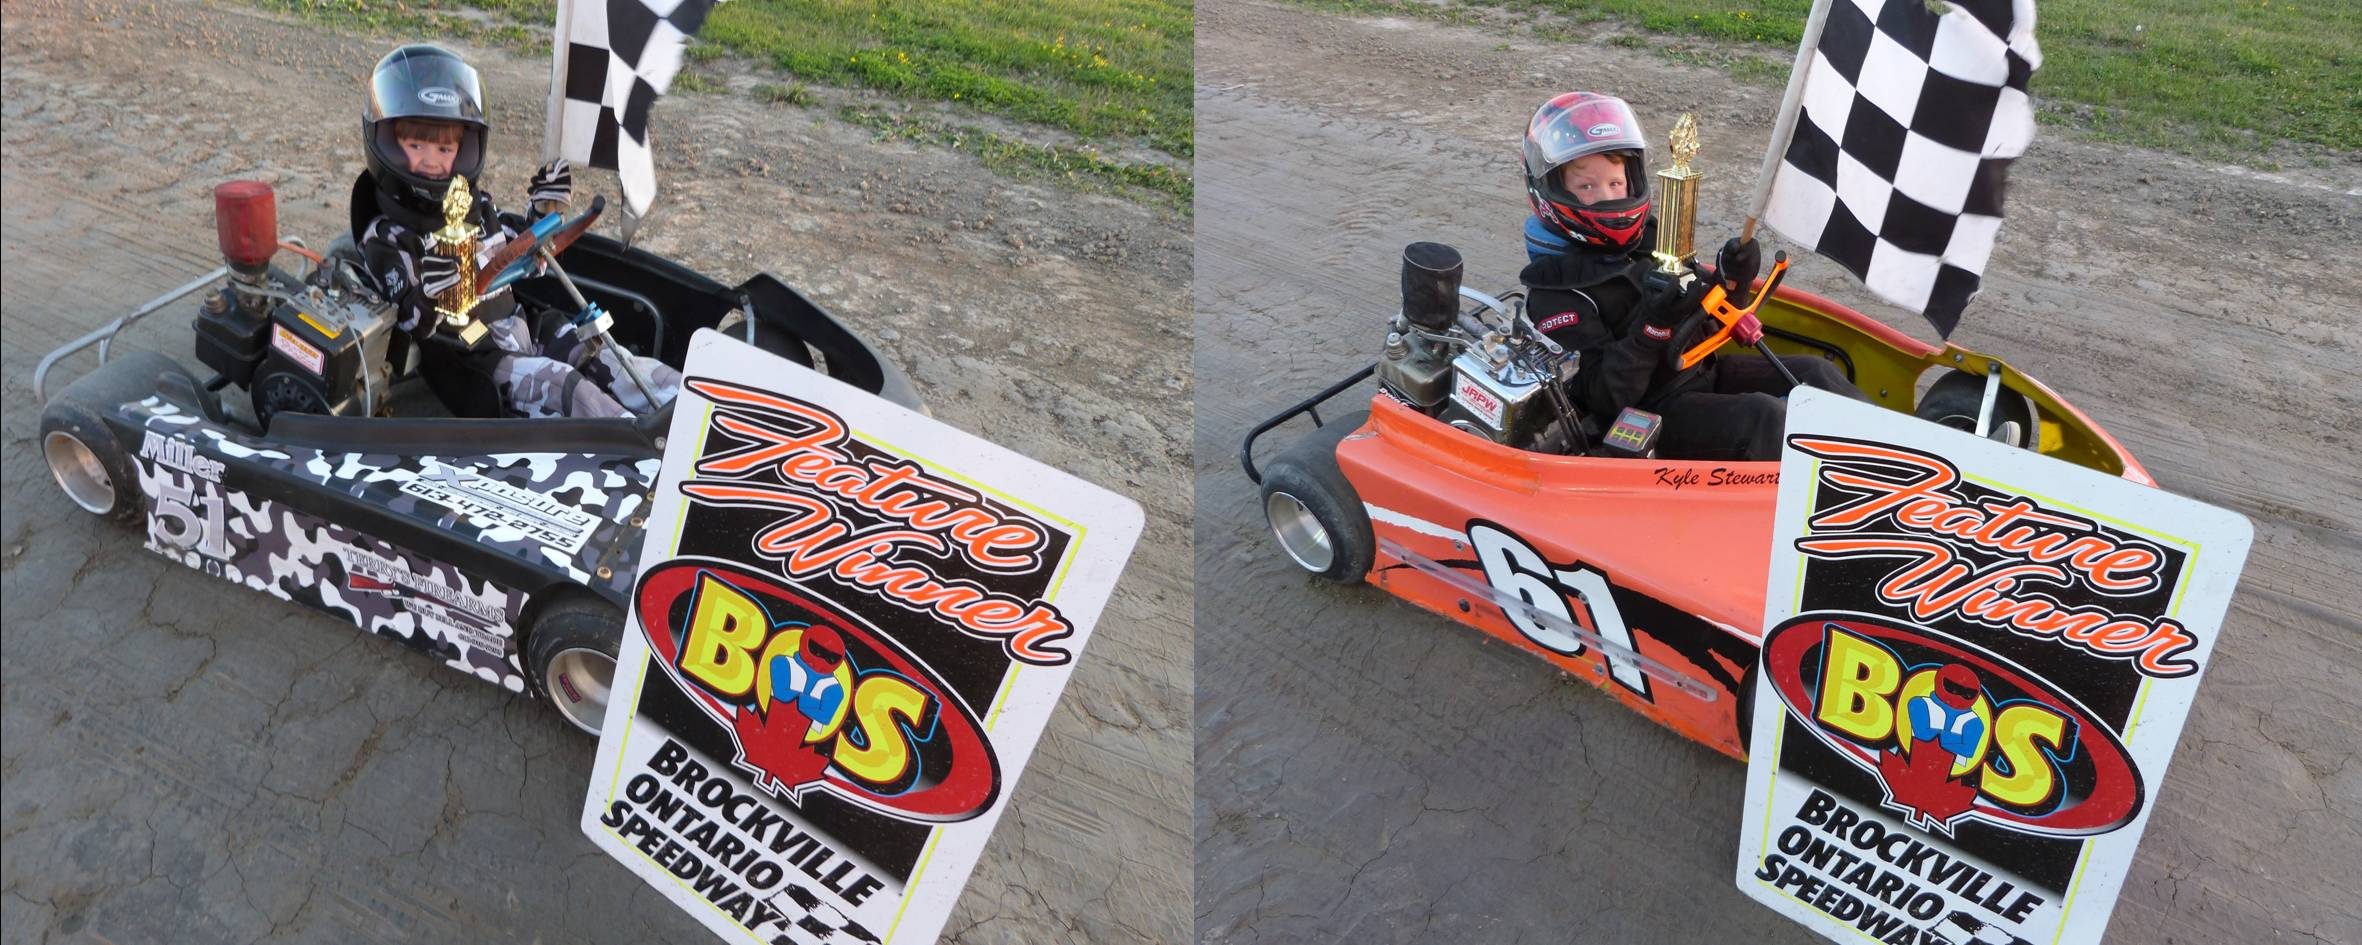 GABE MILLER AND KYLE STEWART SCORE FIRST CHECKERED FLAGS OF 2016 AT BROCKVILLE